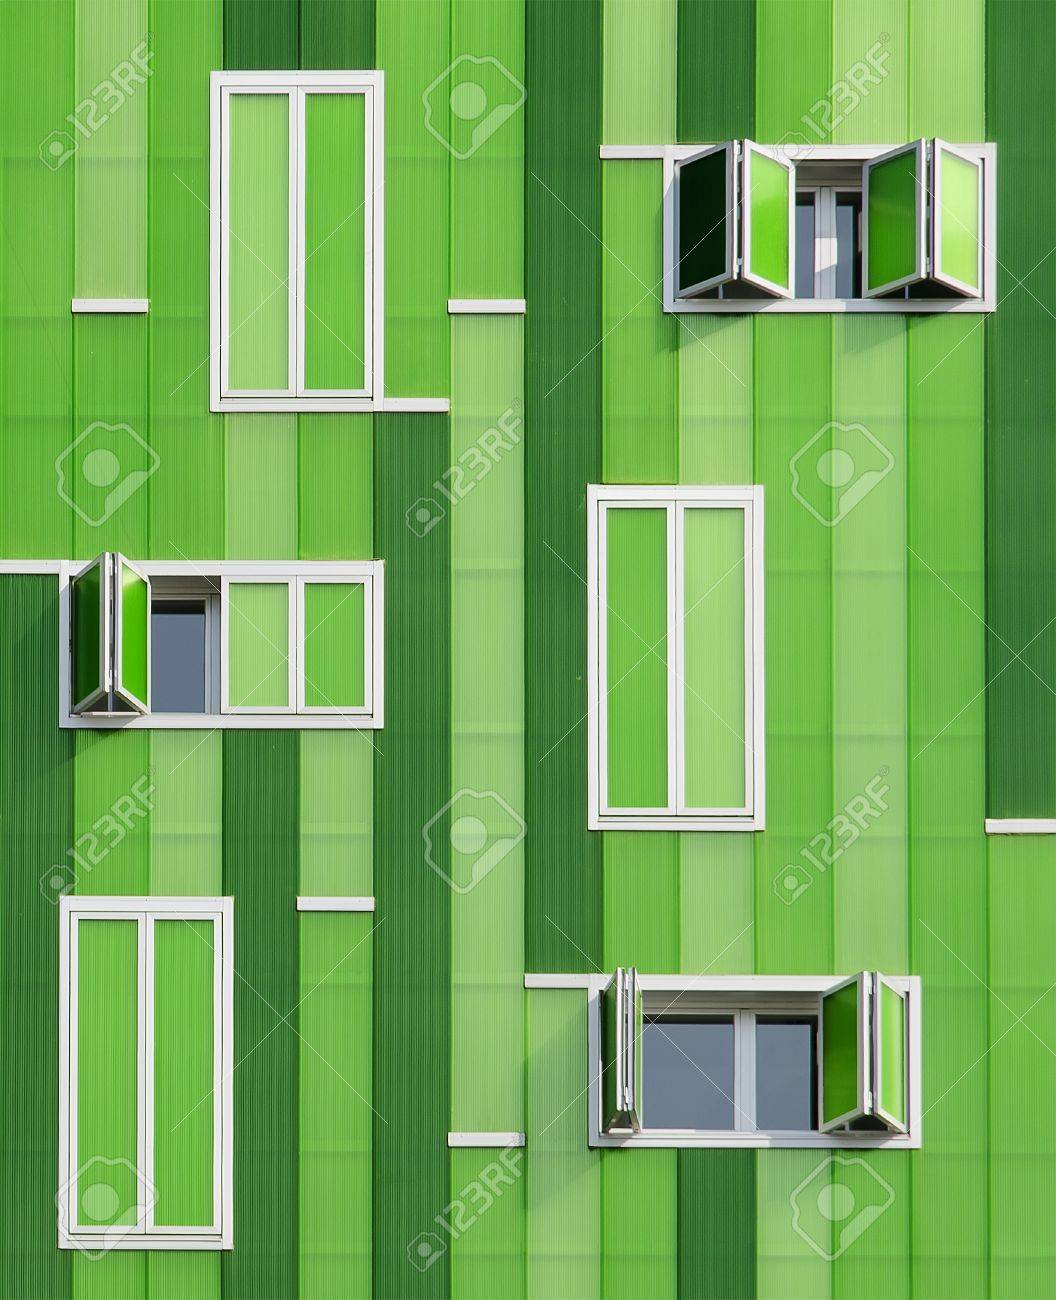 Modern building  Its green facade imitate the texture of bamboo with a lot of parallel vertical lines the windows have different sizes Stock Photo - 13769723